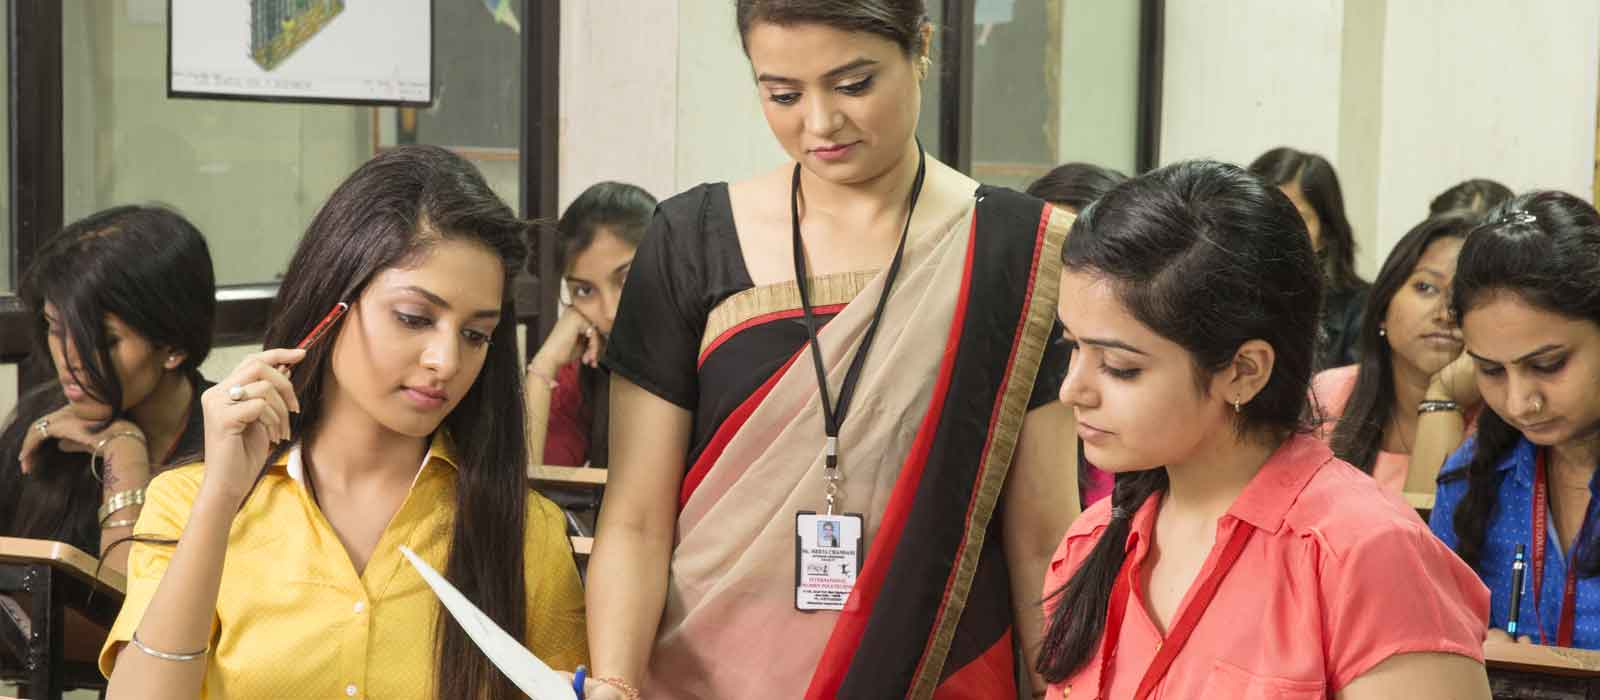 Courses for fashion designing in india Top 10 fashion design colleges in India 2016 m